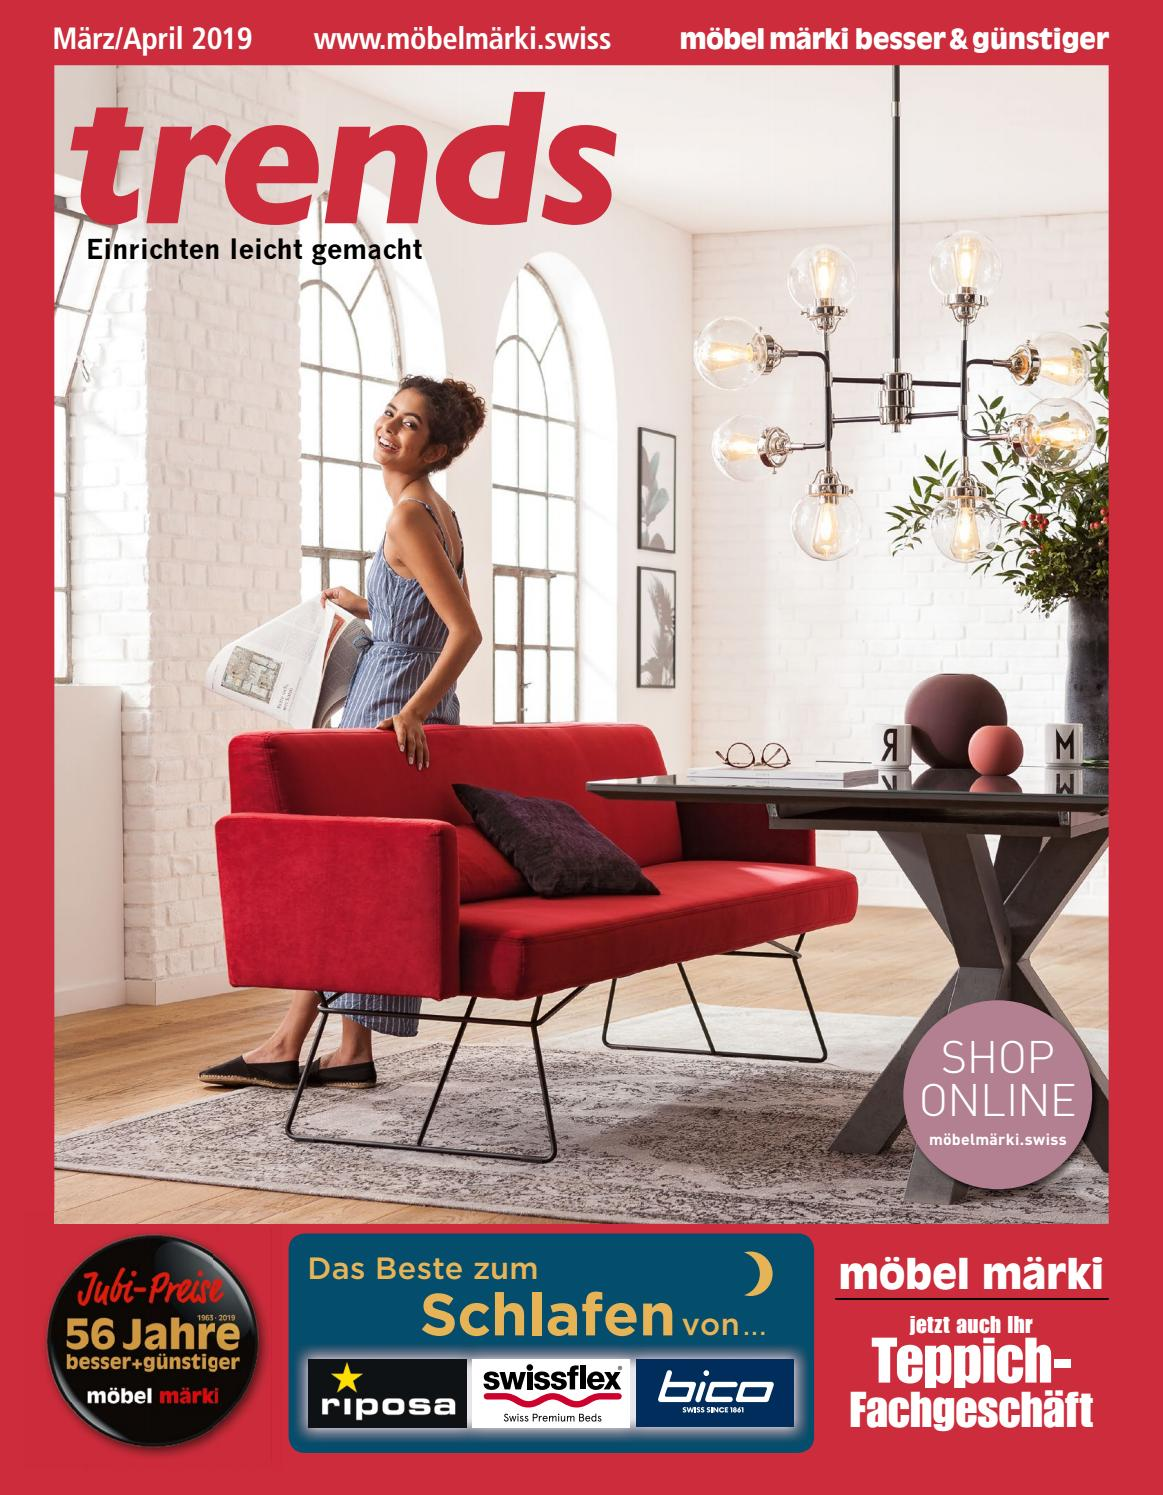 Interio Sofa Erfahrungen Möbel Märki Katalog 2019 Maerz April By Markus Frey Issuu